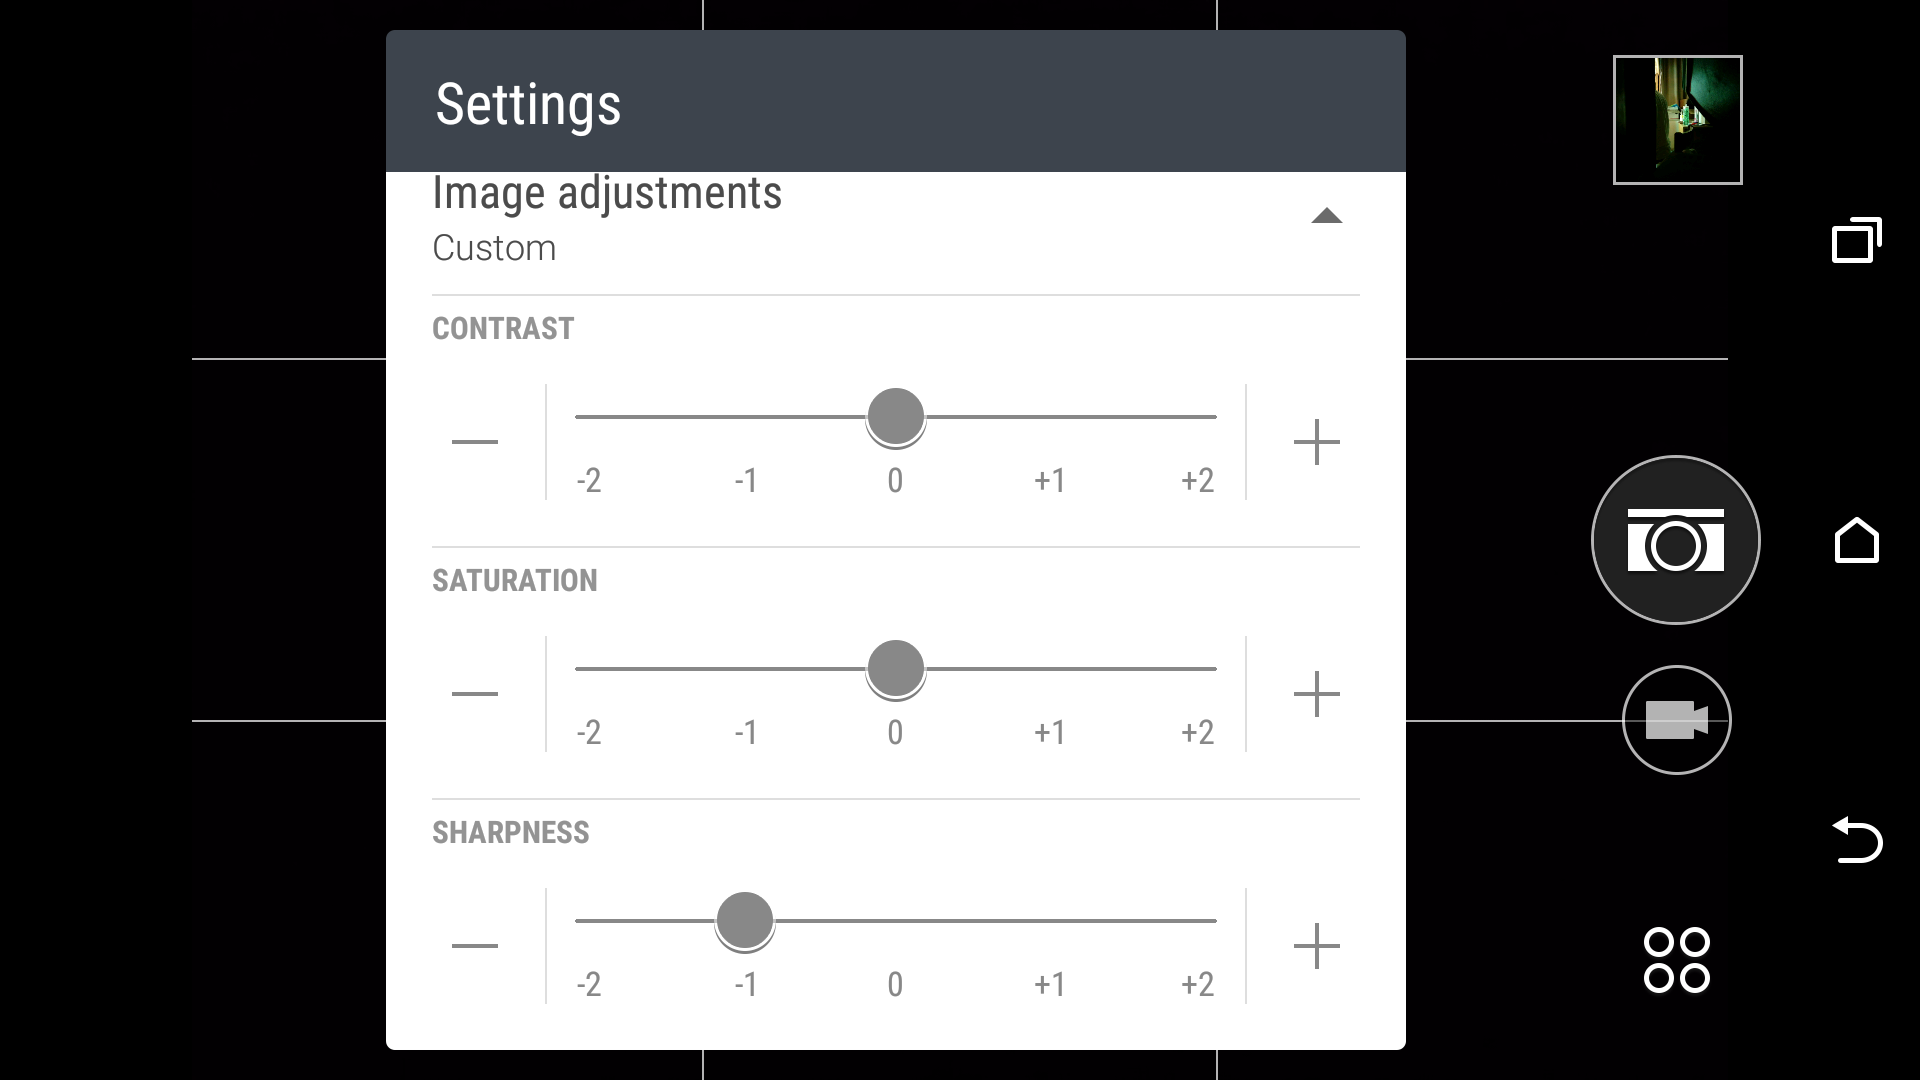 Camera Architecture And Ux The Htc One M9 Review Part 2 Pro Comp Pc 8000 Wiring Diagram Also Includes A Full Manual Mode Which Allows Adjustment Of Exposure Compensation Exact White Balance Temperature Iso Settings